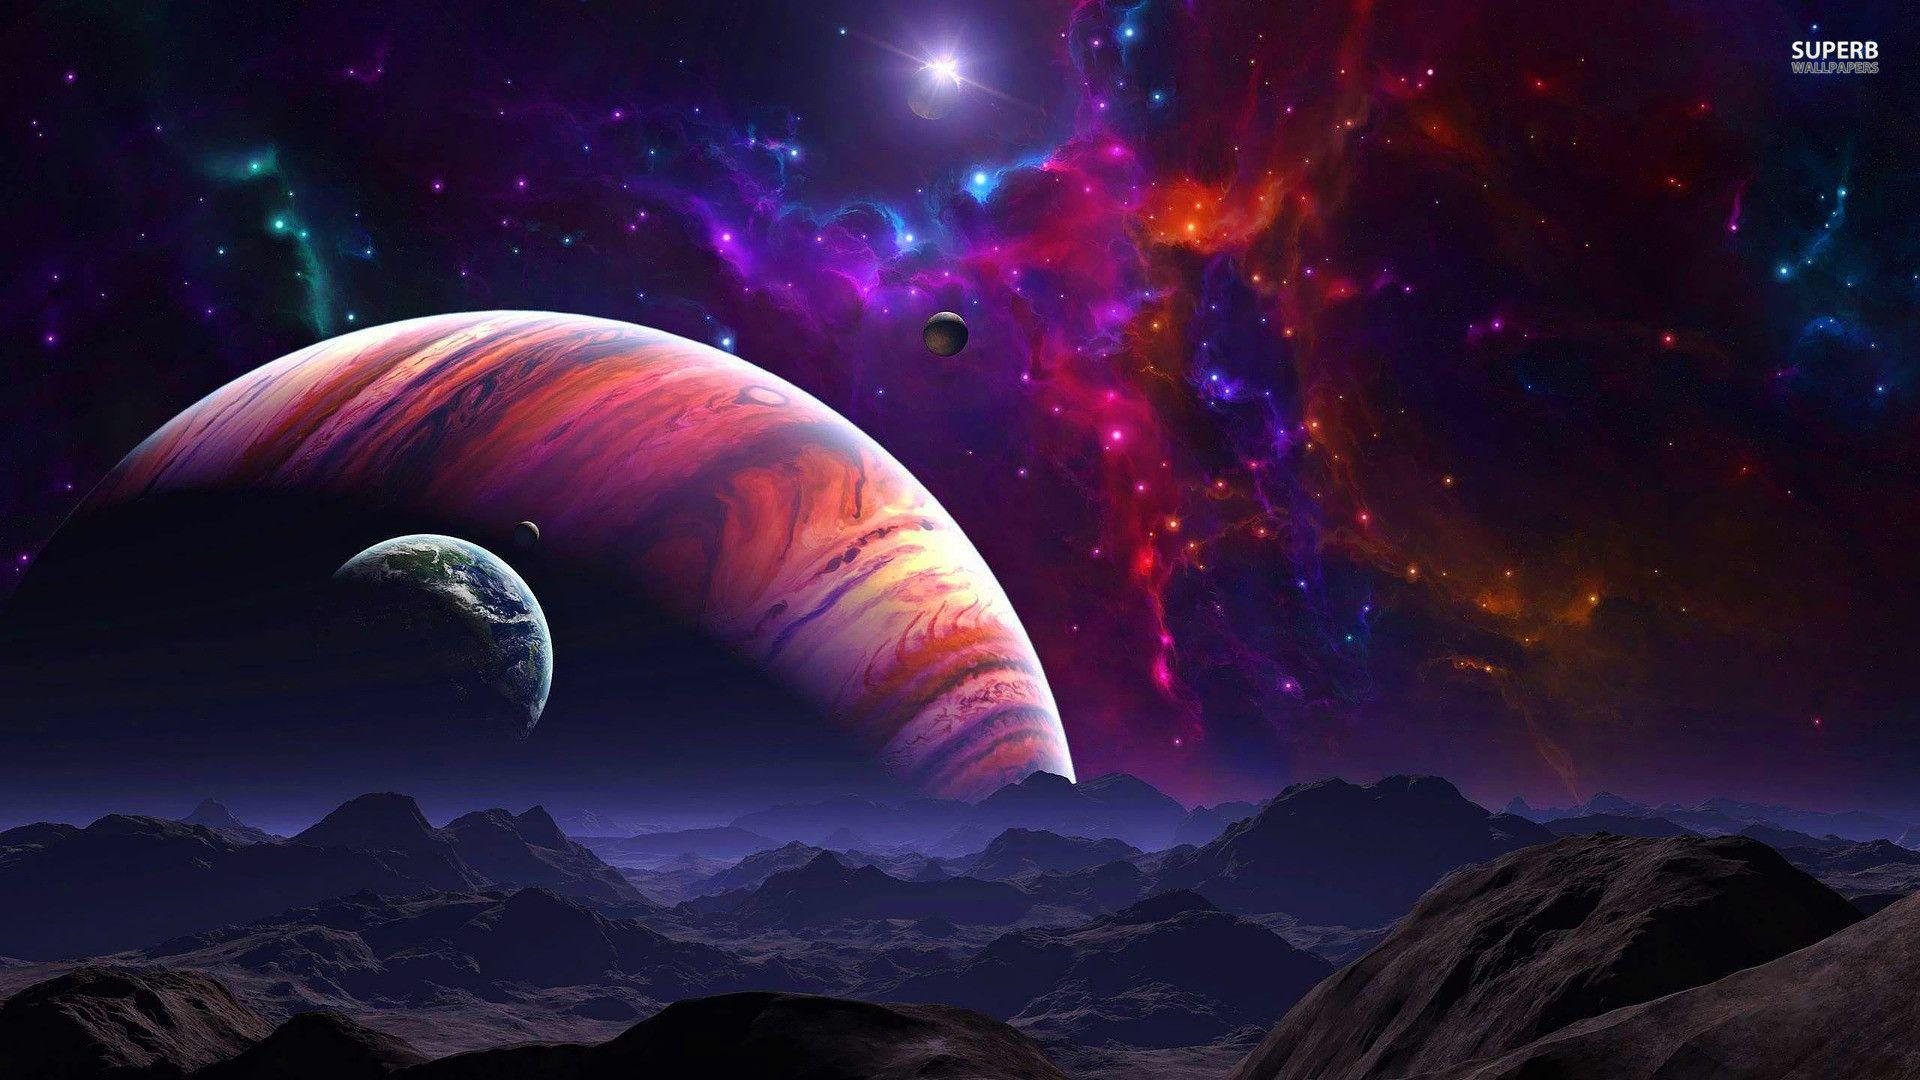 10 Latest Cool Laptop Backgrounds Space Full Hd 1920 1080: Space Wallpapers 1920x1080